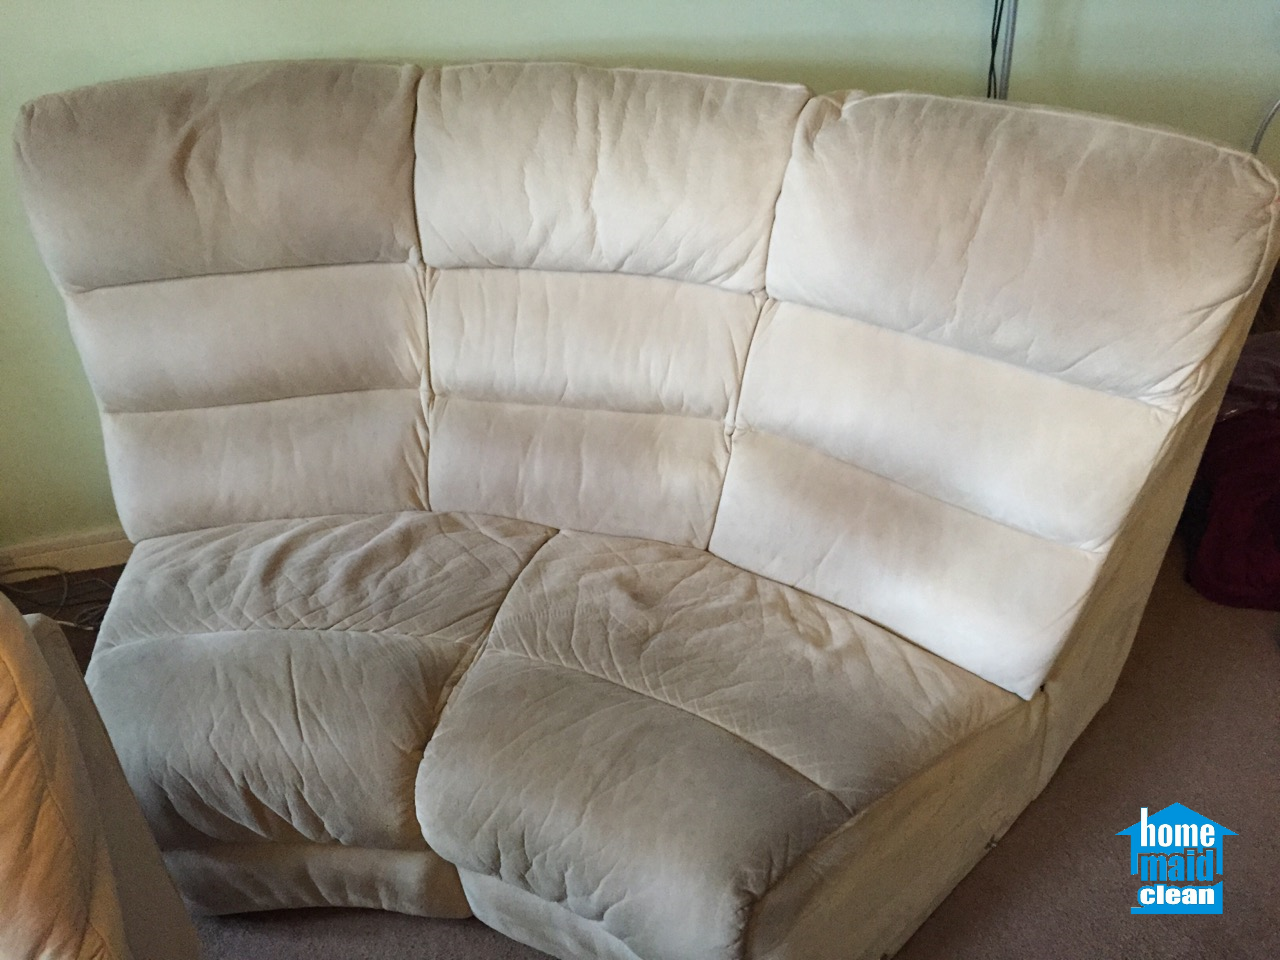 end of tenancy and sofa steam cleaning in sw london